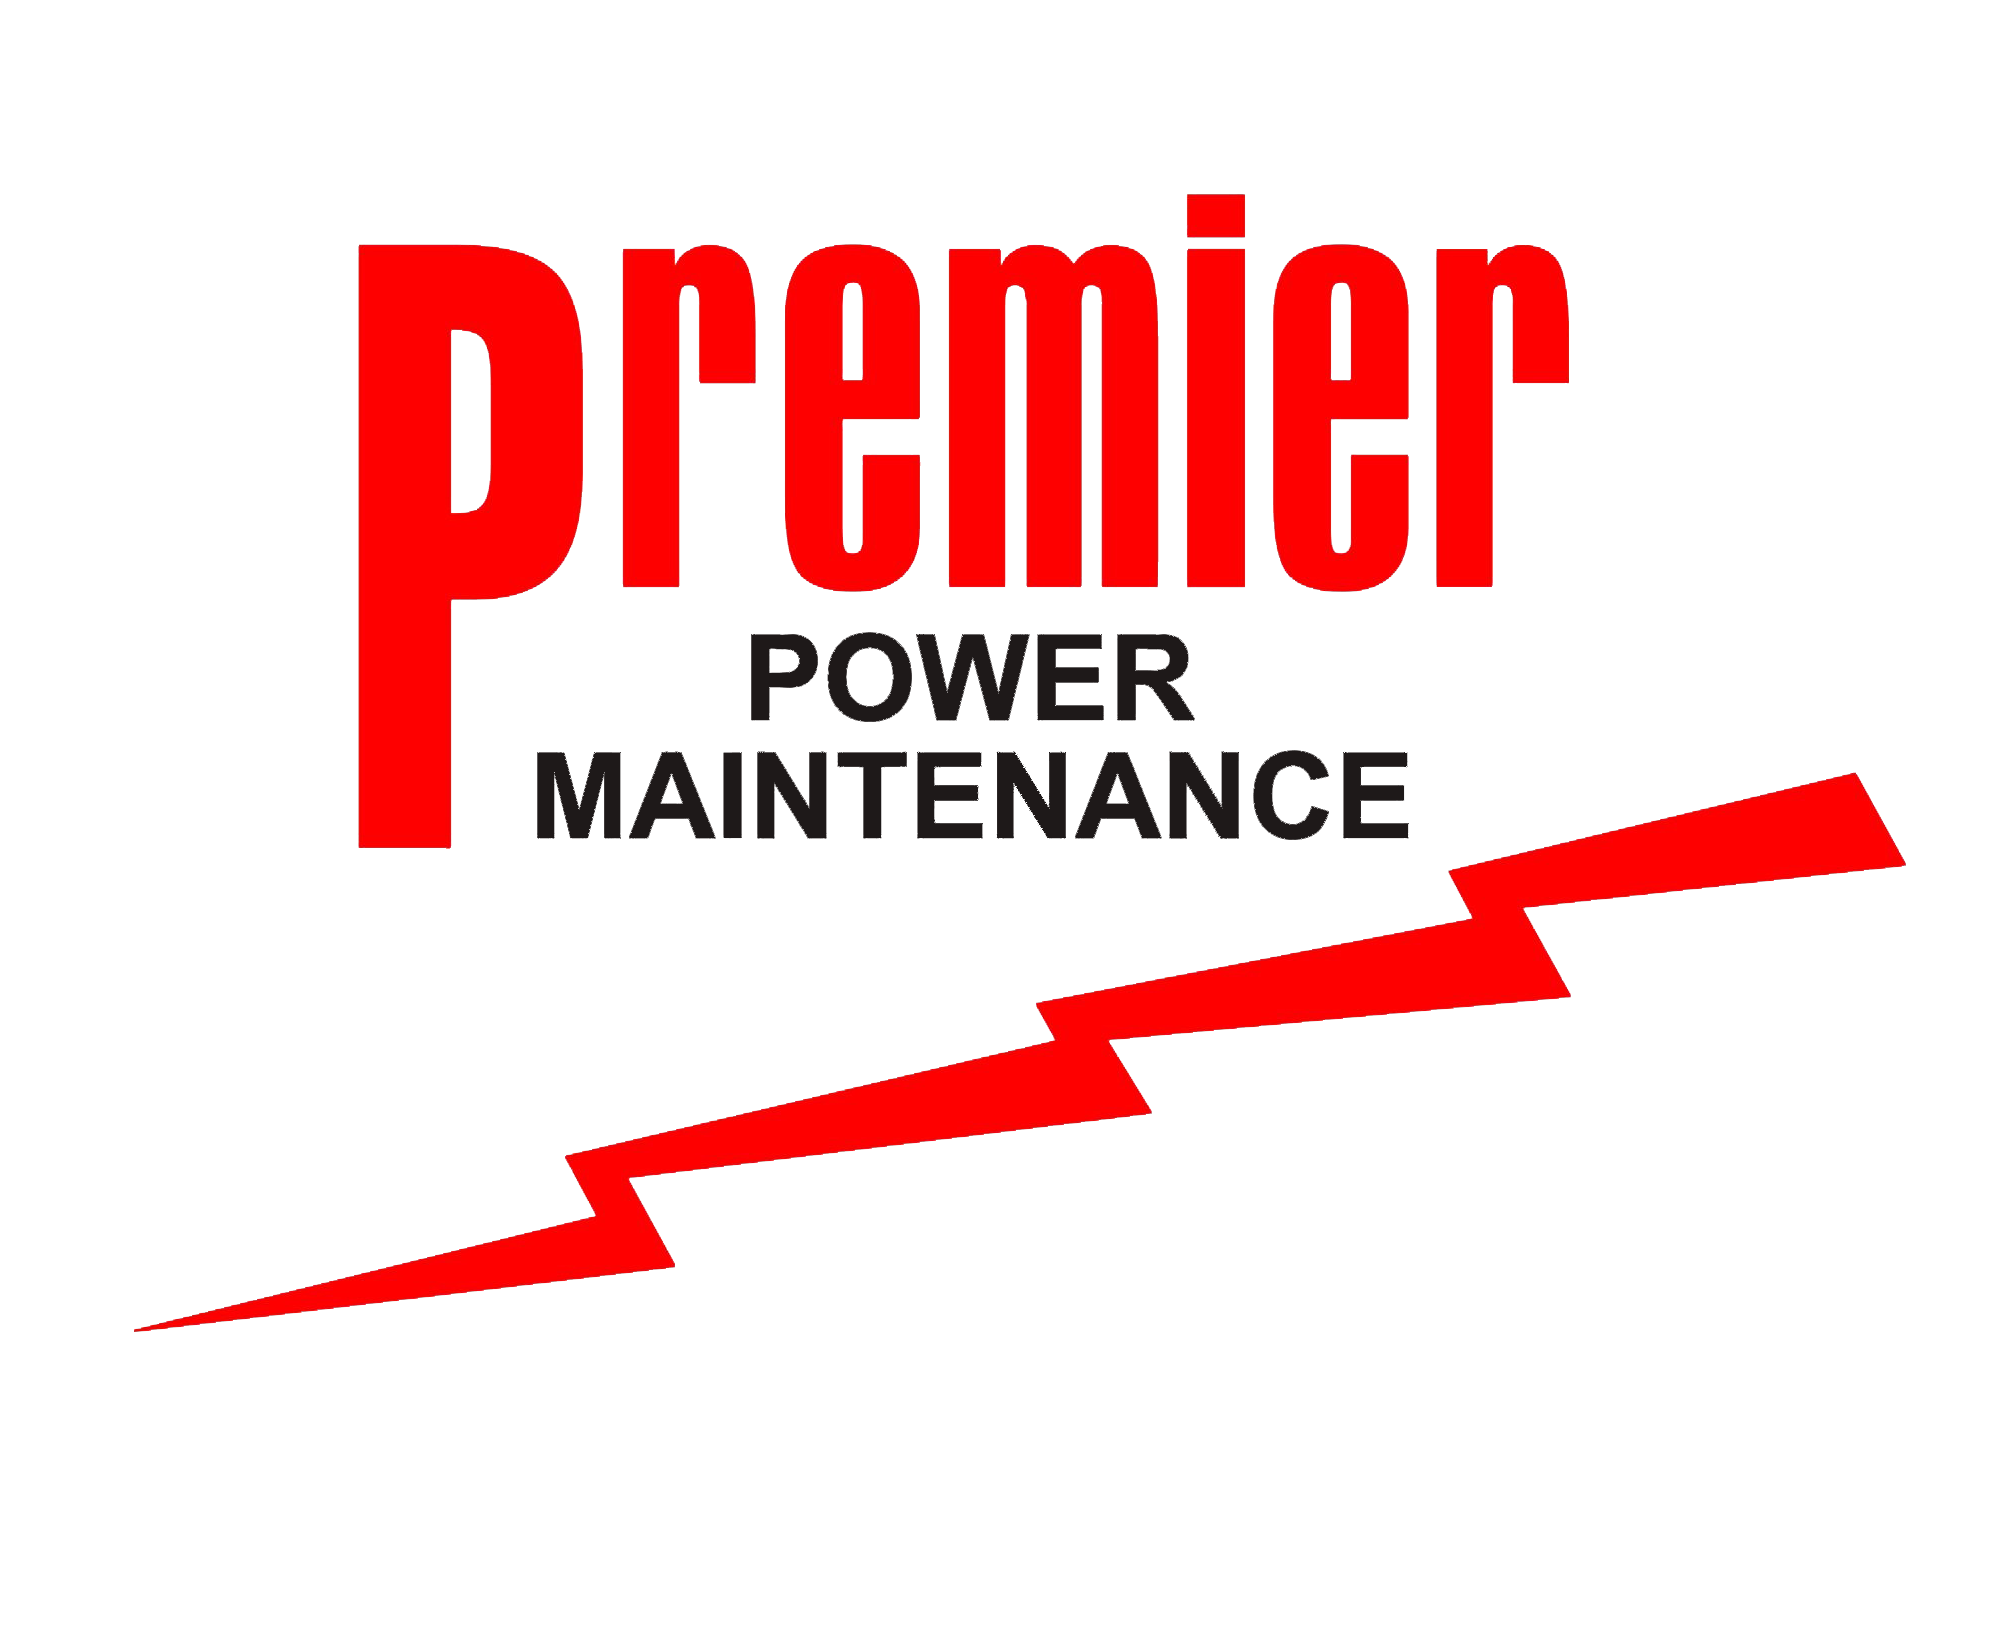 Premier Power Maintenance